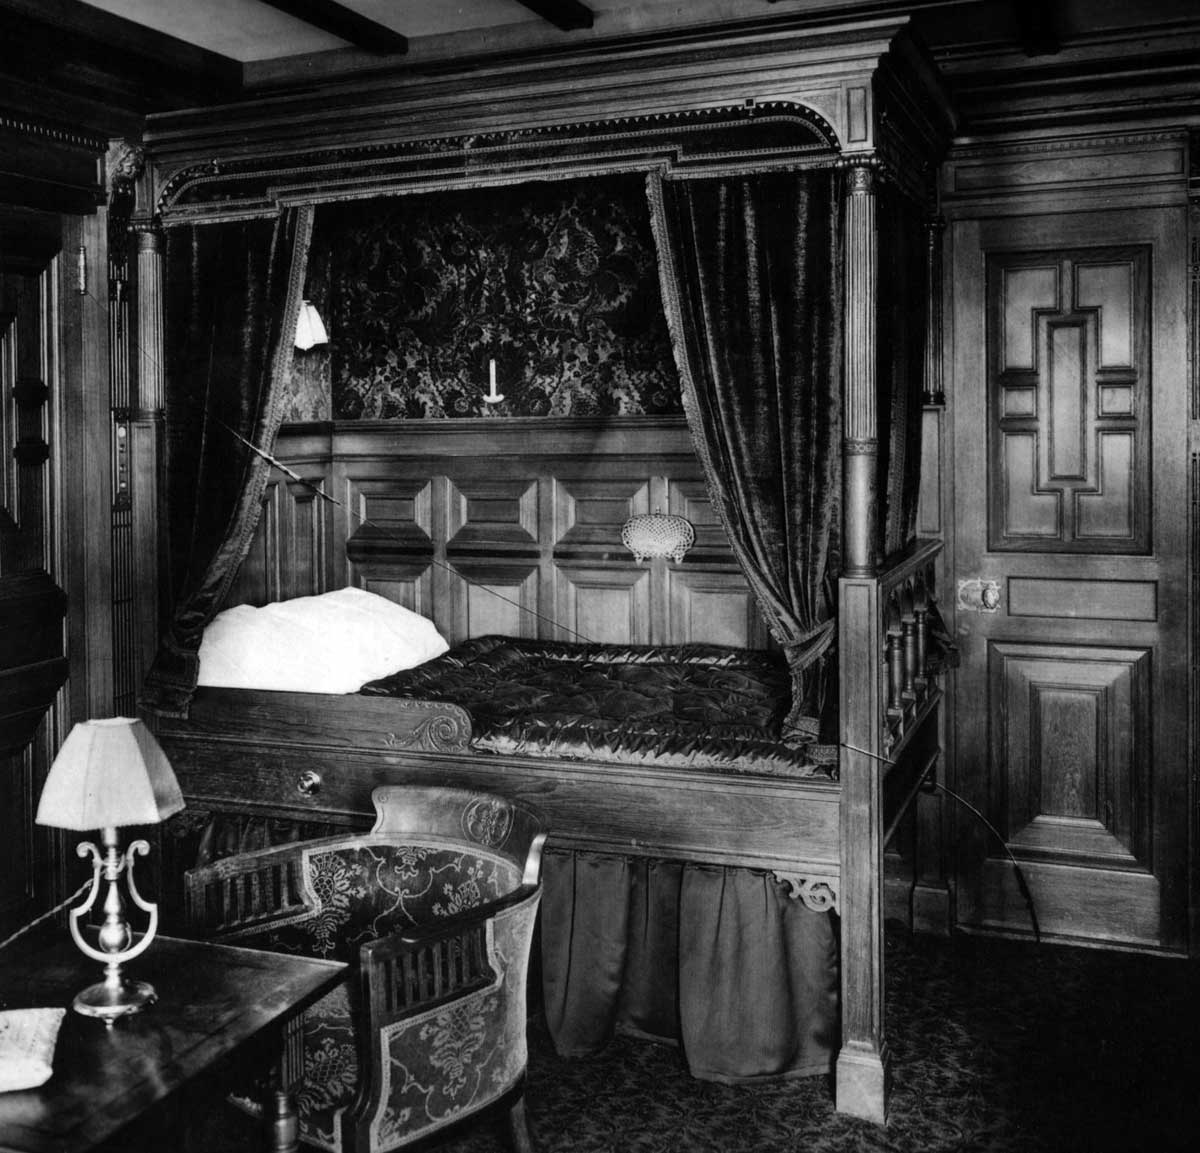 rms titanic the construction and outfitting of this world famous parlor suite first class cabin